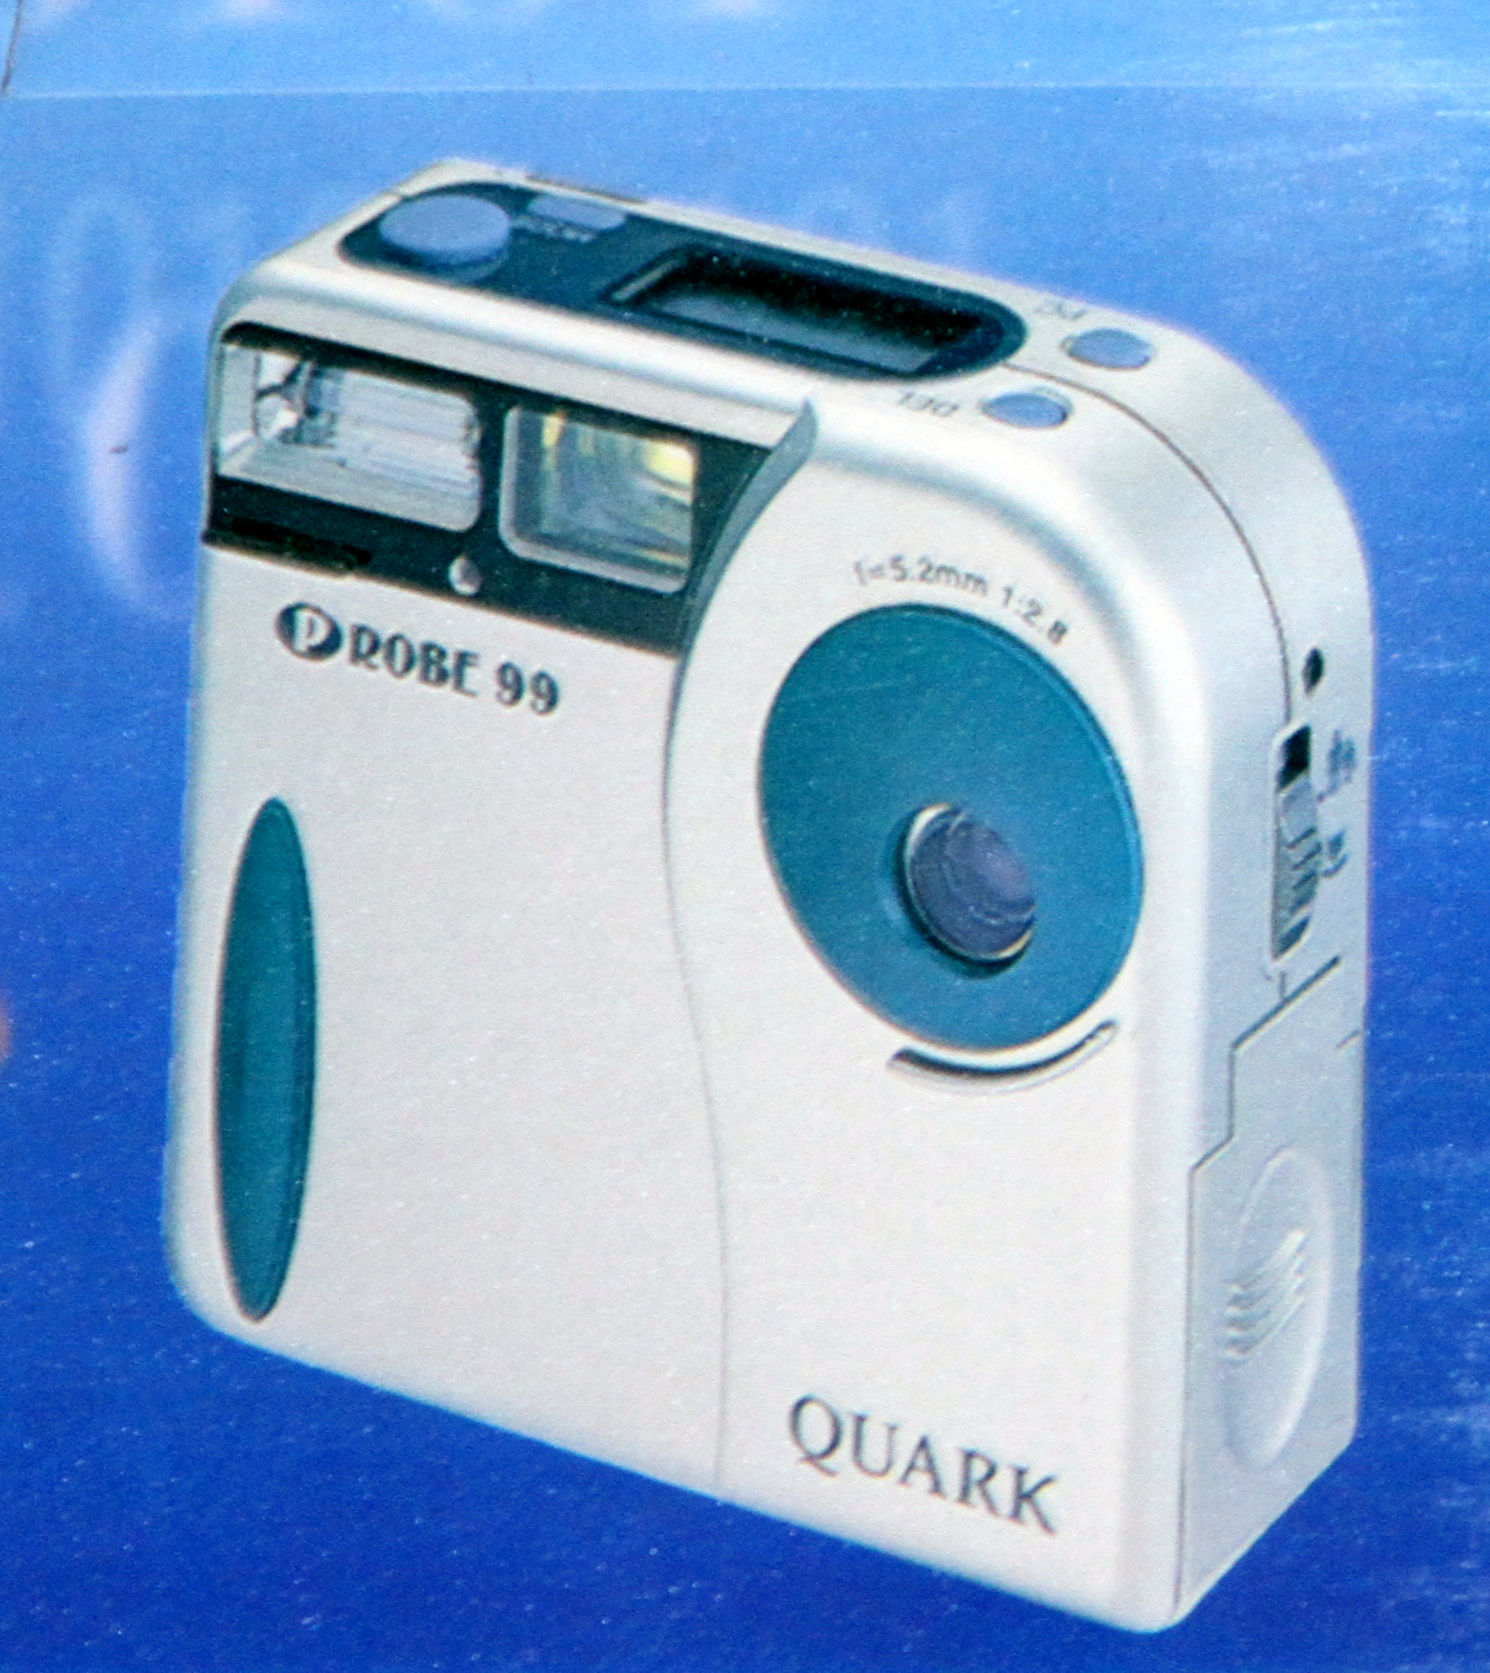 Quark Probe 99 digital camera